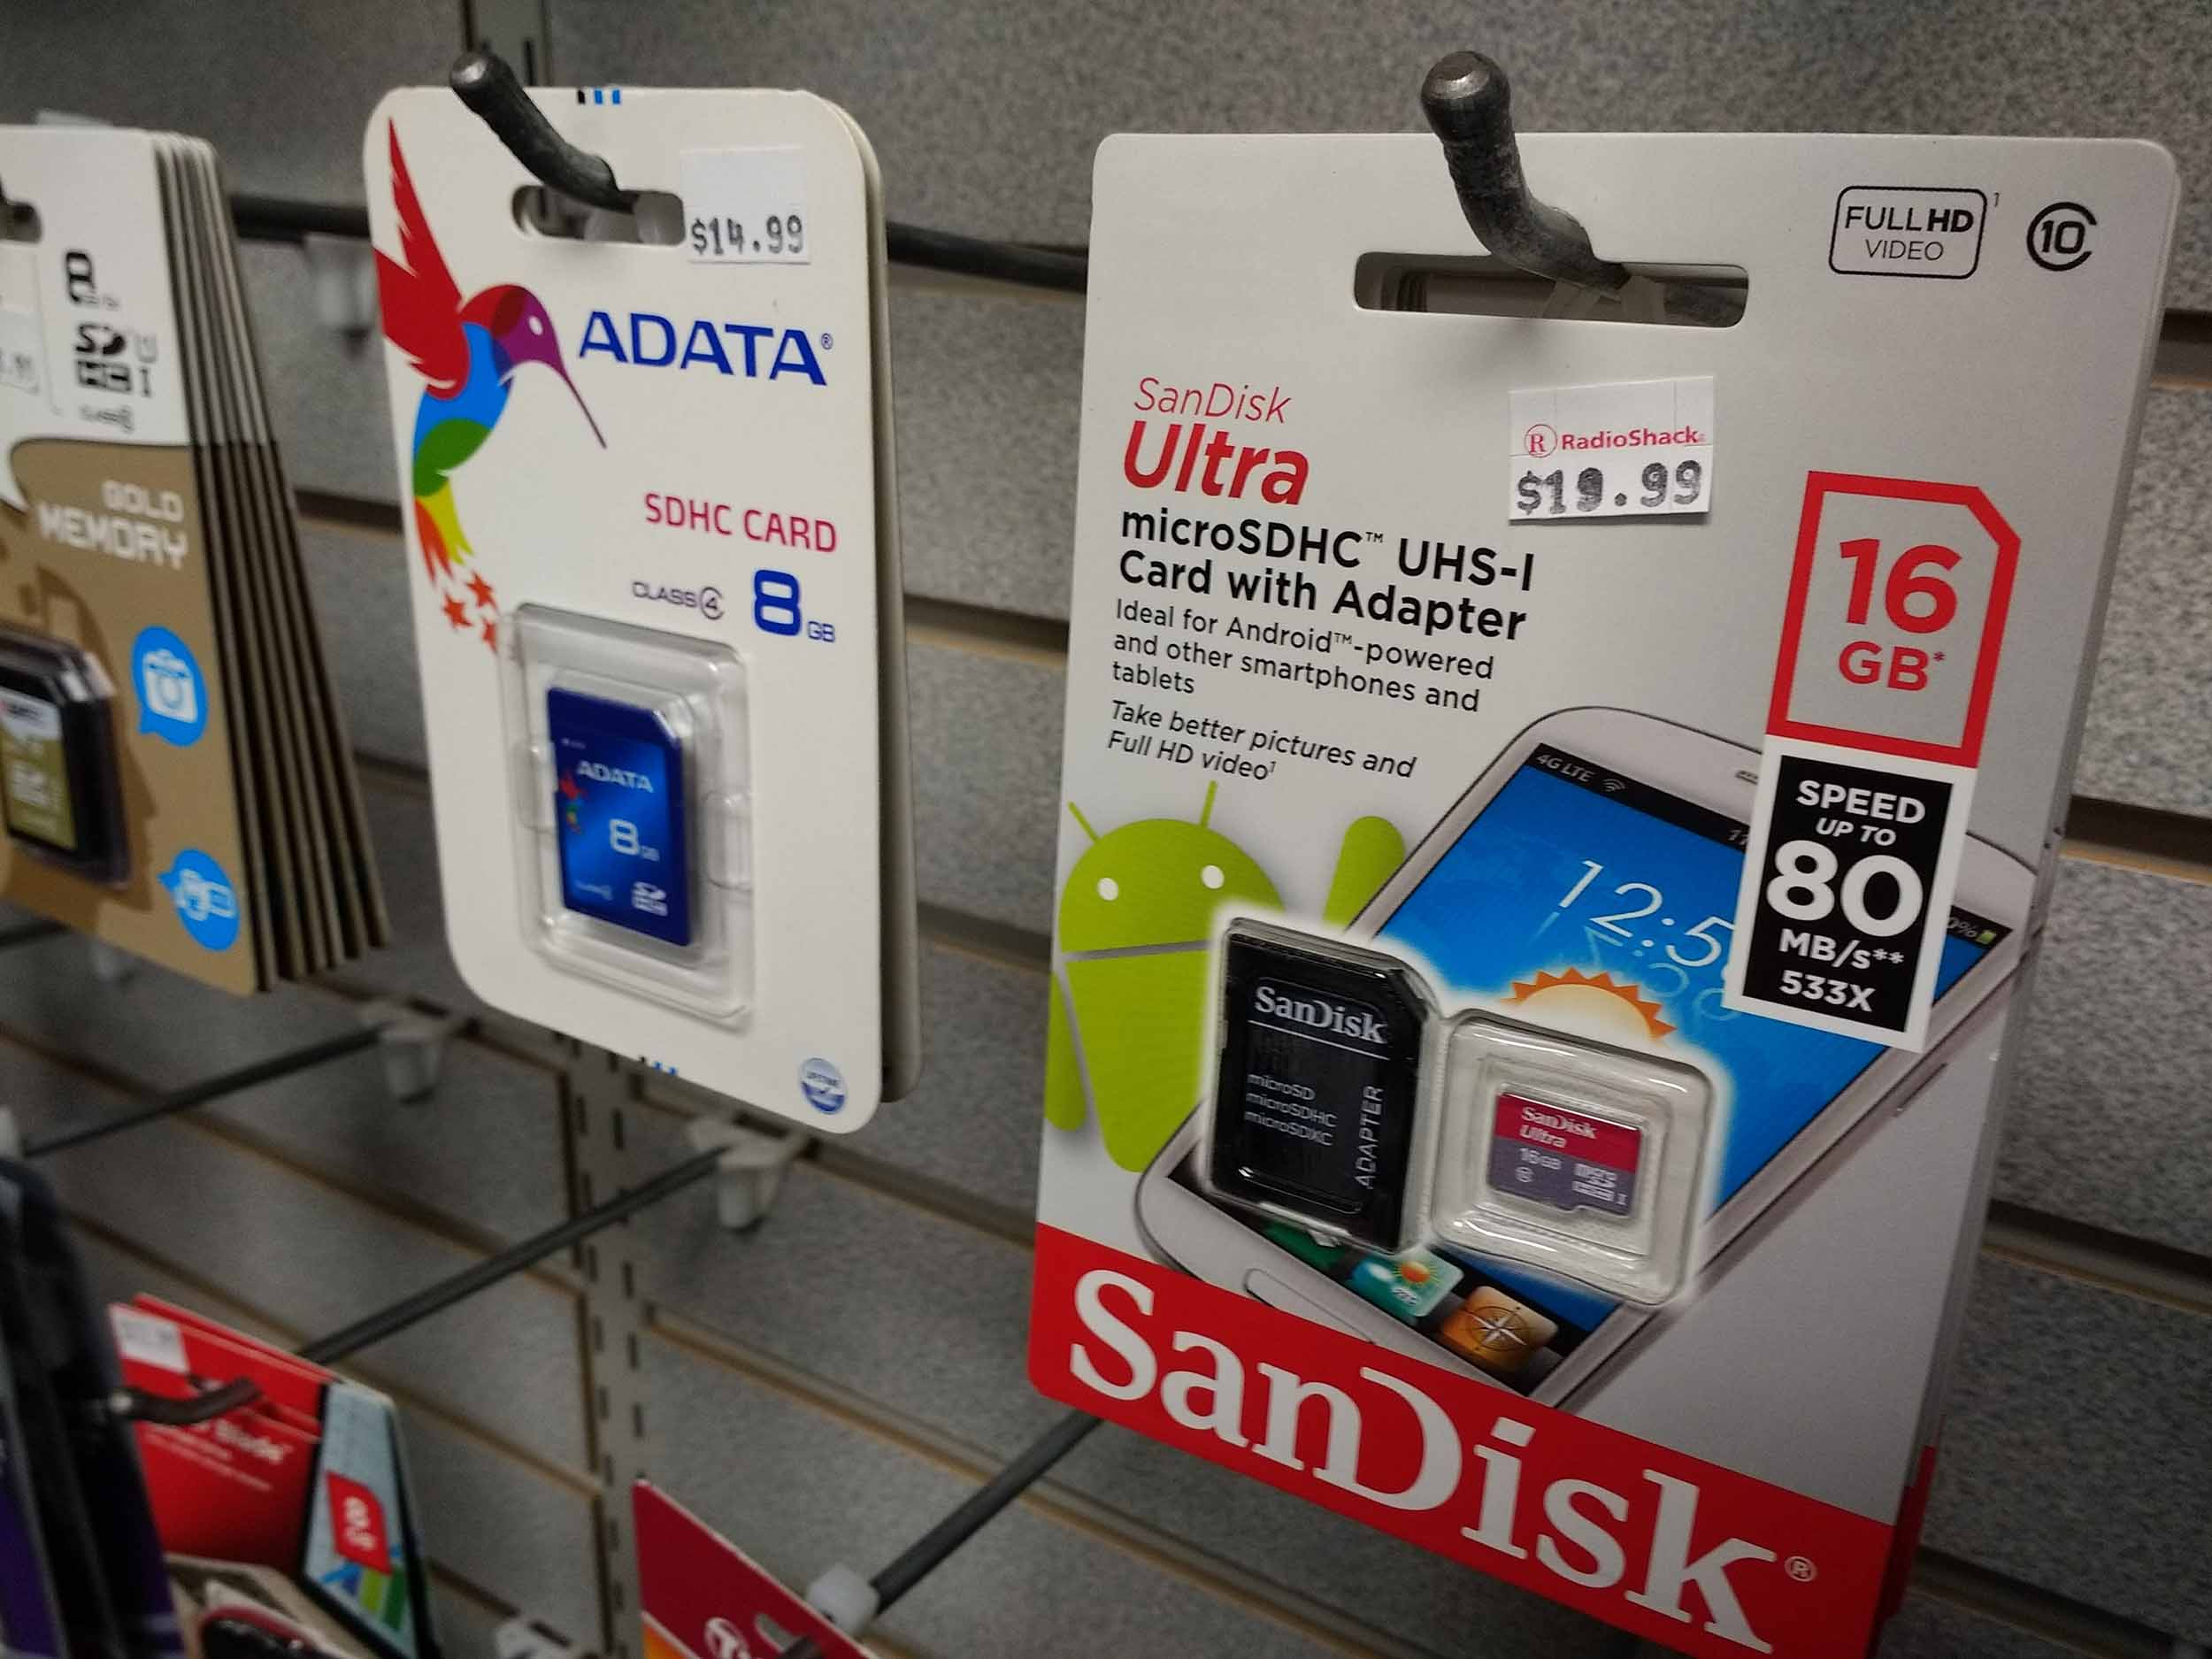 Full size and micro SD cards and adapters are always in stock.